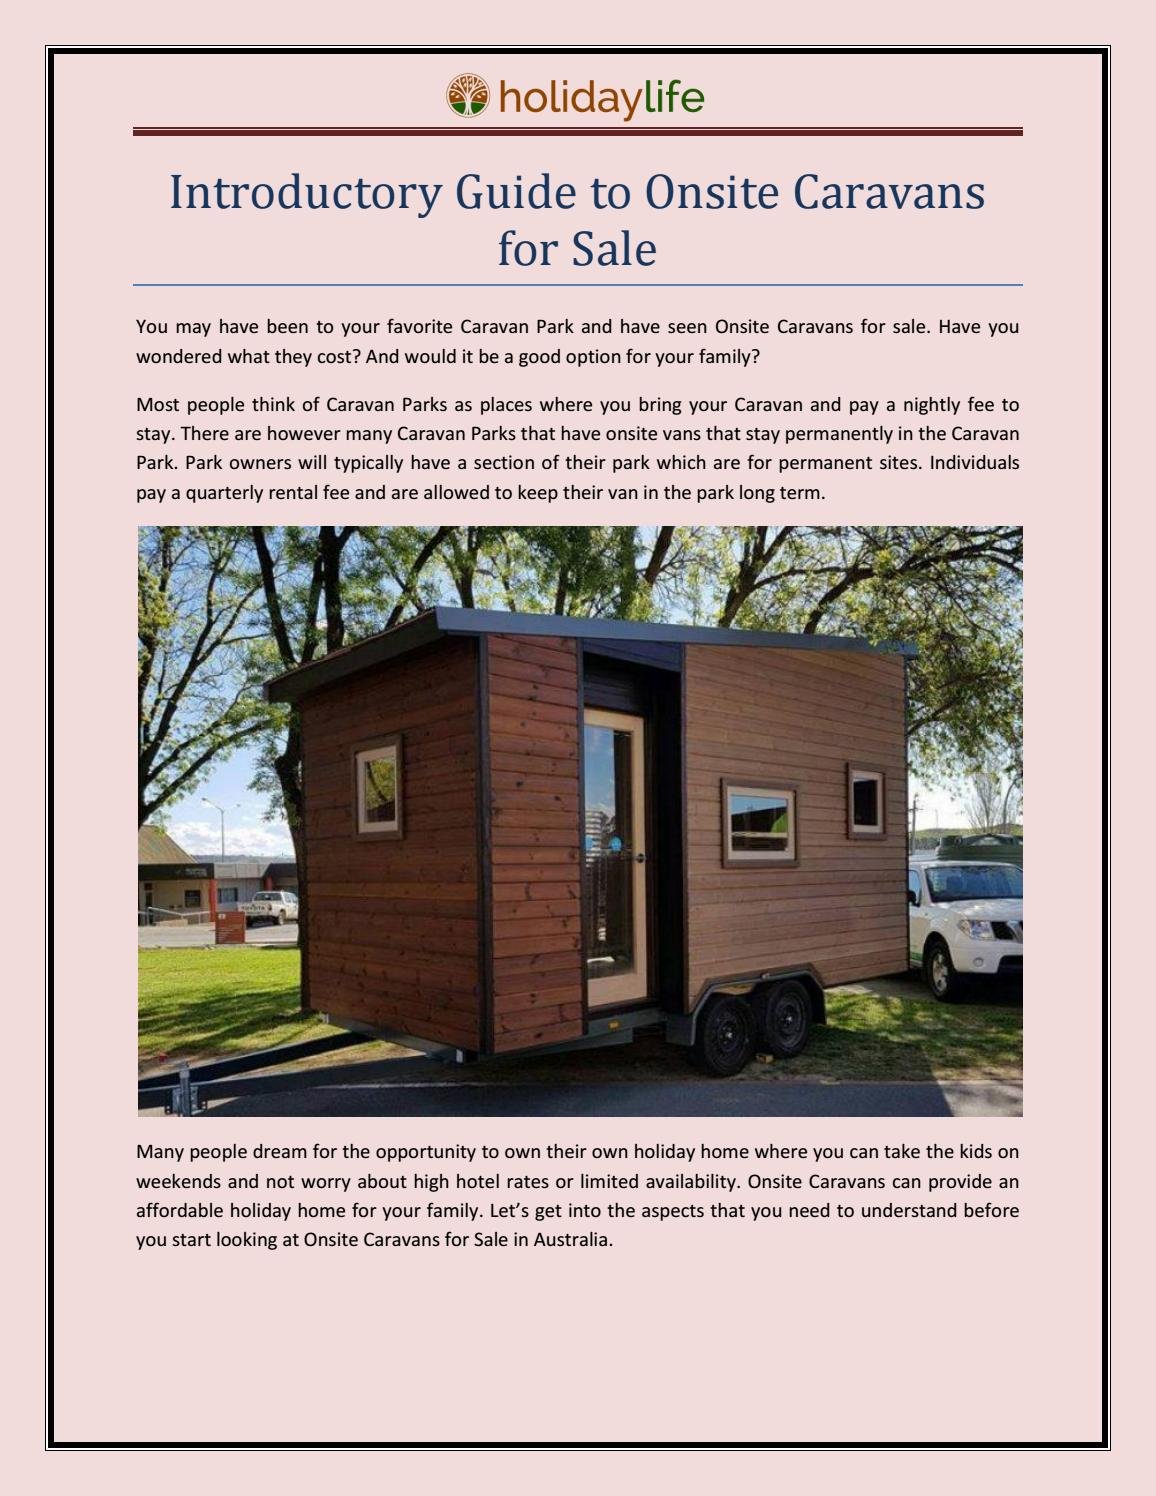 Onsite Caravans For Sale | Holidaylife by holidaylife - issuu